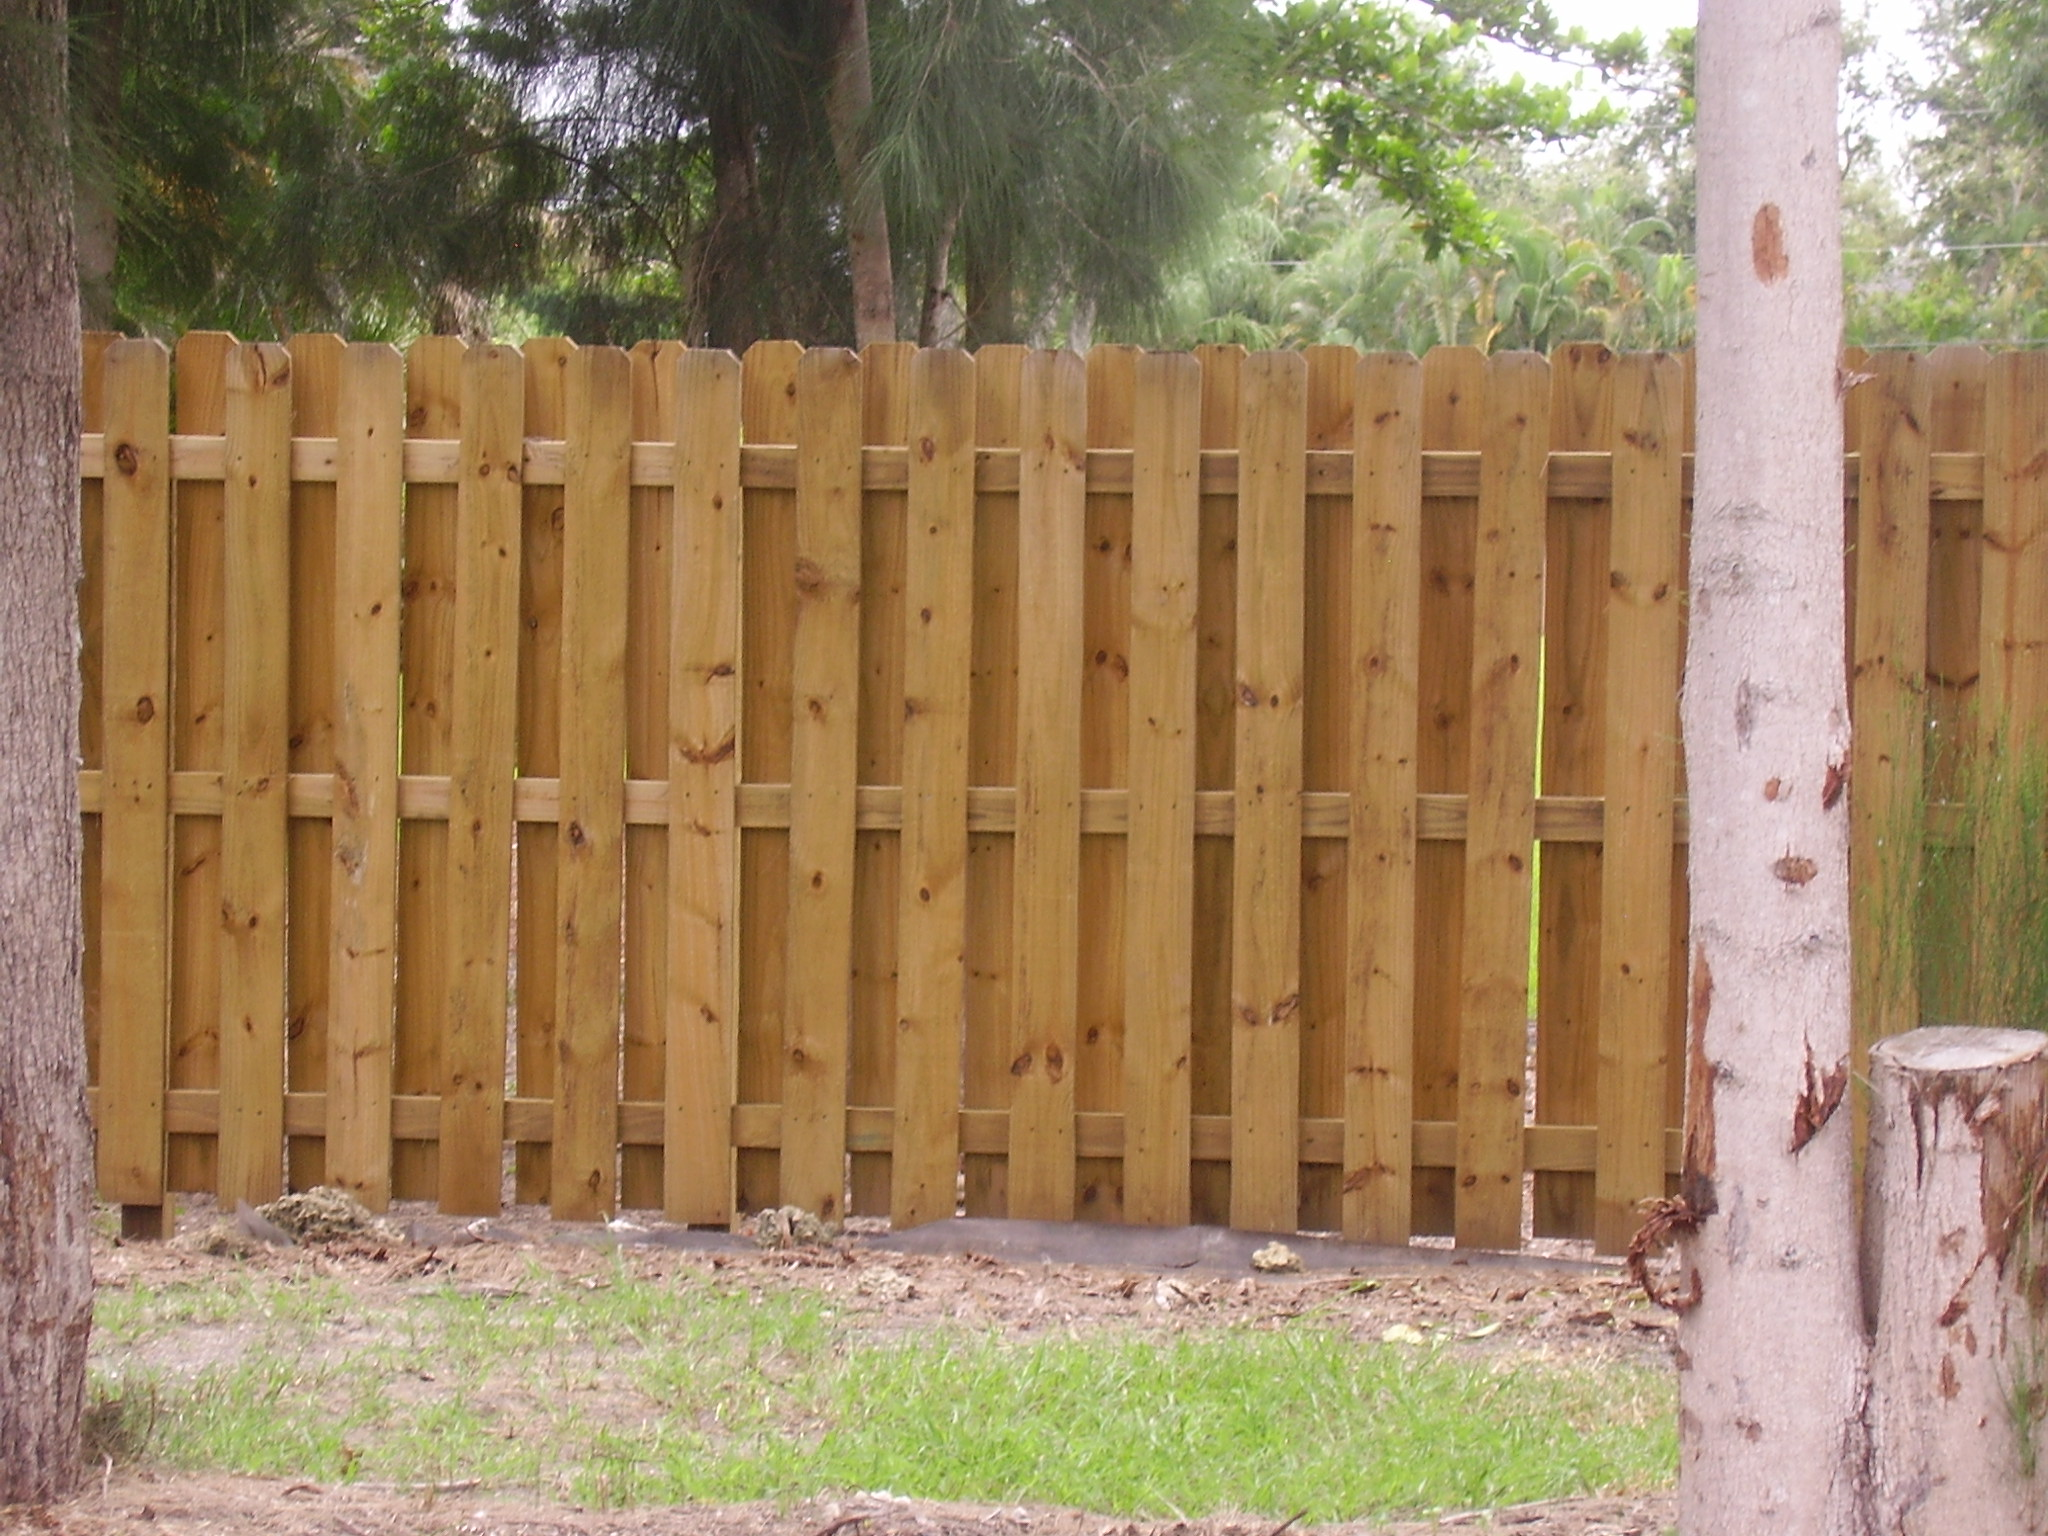 Both sides of the fence look the same. The posts are seen on the inside. This fence has diagonal visibility and allows for air to flow through the fence.